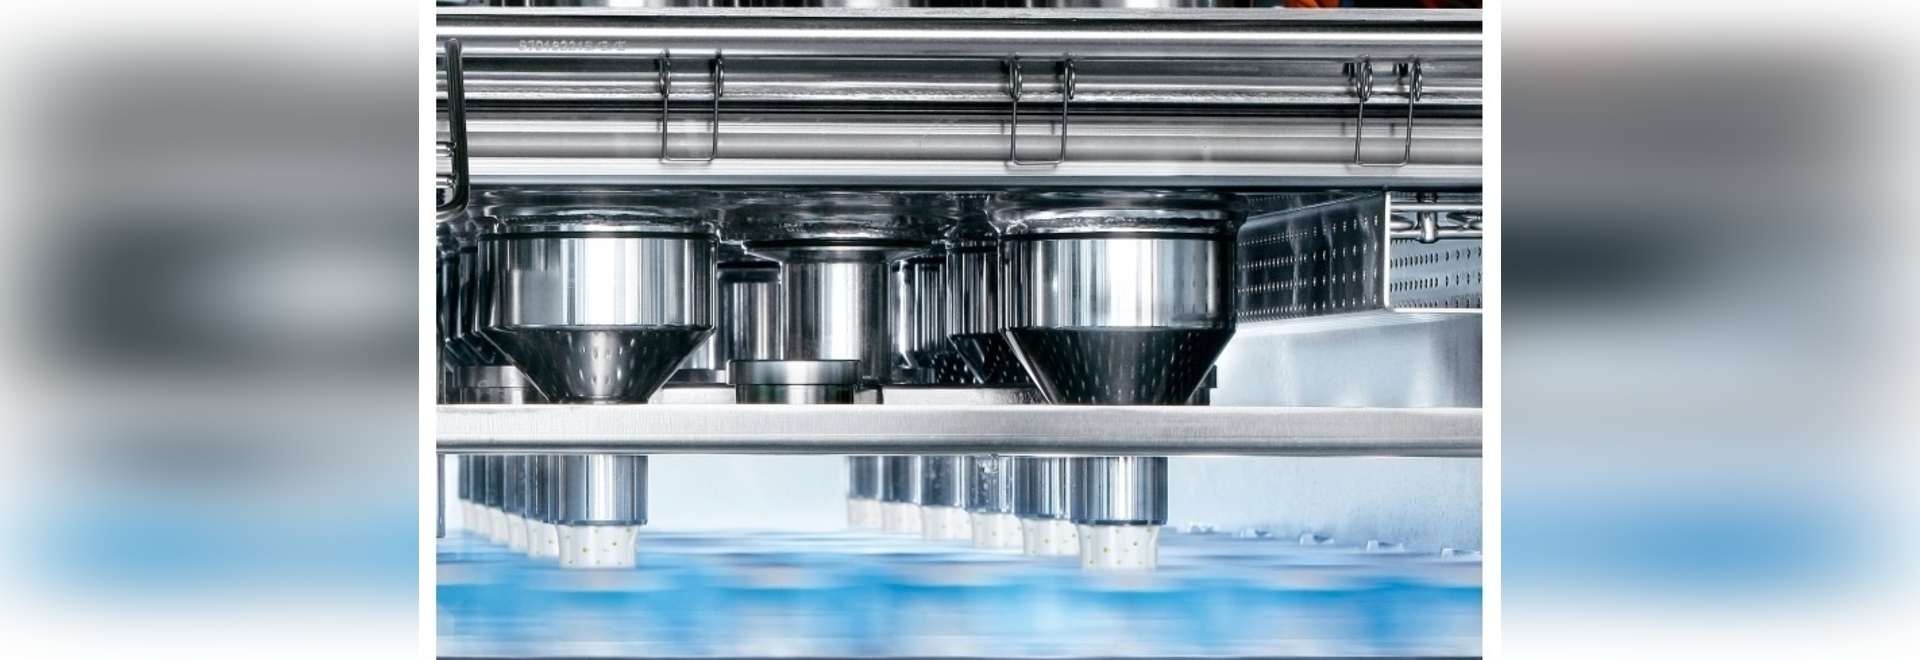 As part of its digital transformation drive for food and beverage manufacturers, all new SIG filling line systems and downstream units are now equipped with built-in bi-directional digital recipe m...